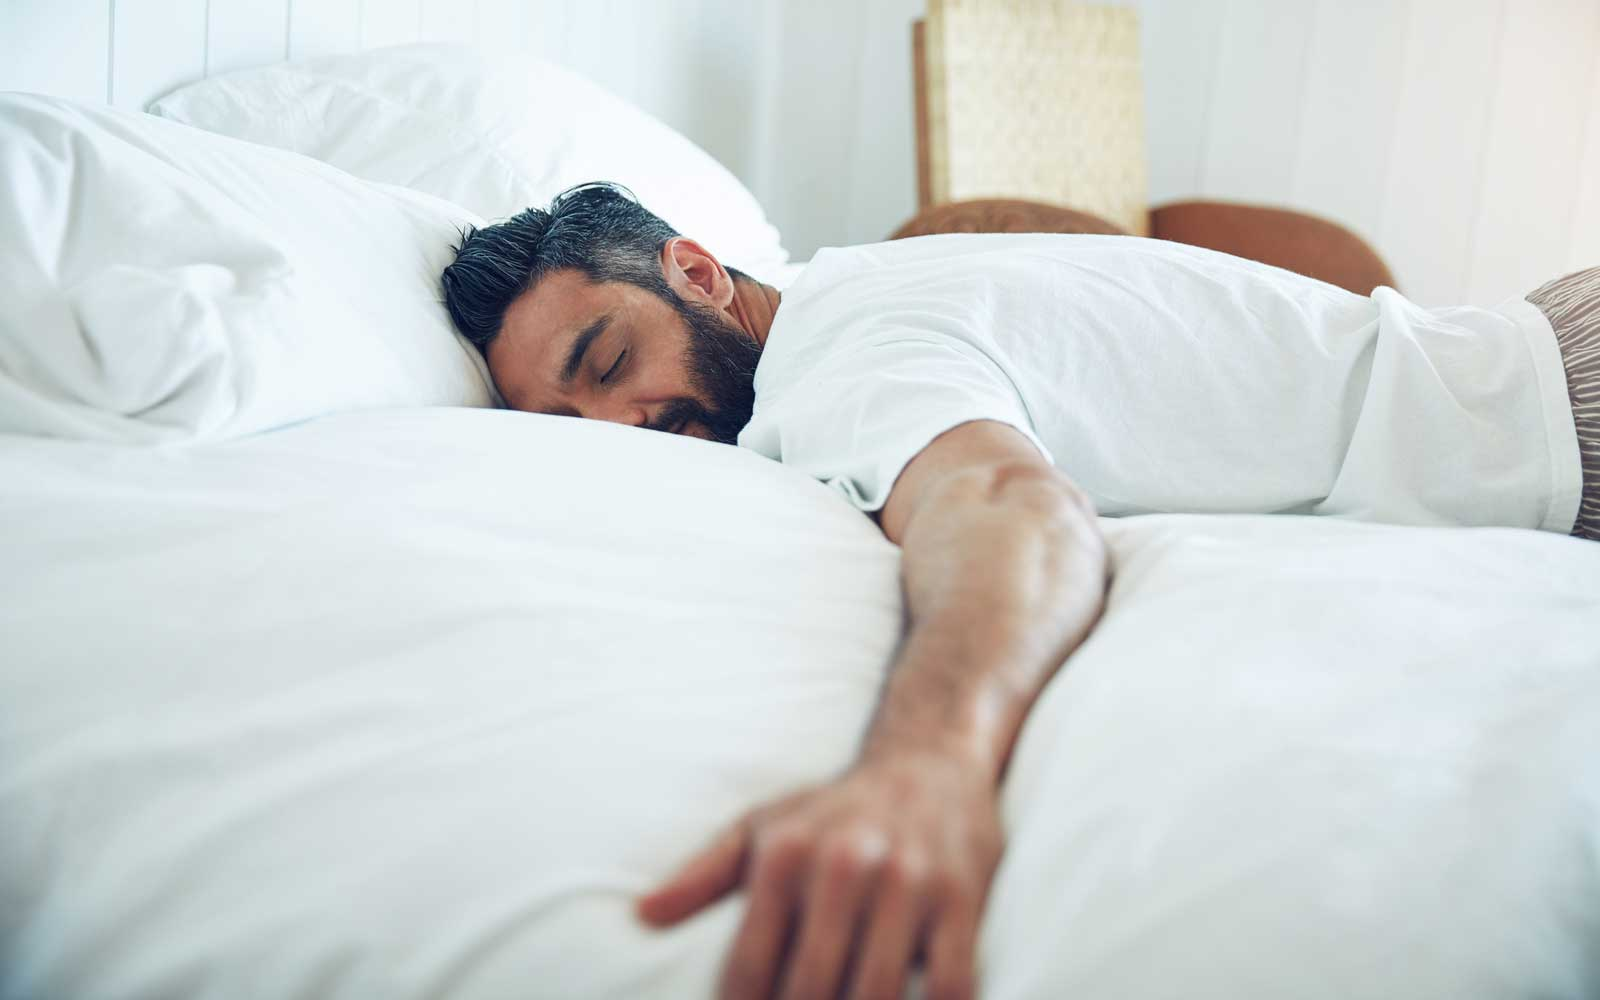 Sleeping in on the weekends could be really bad for you